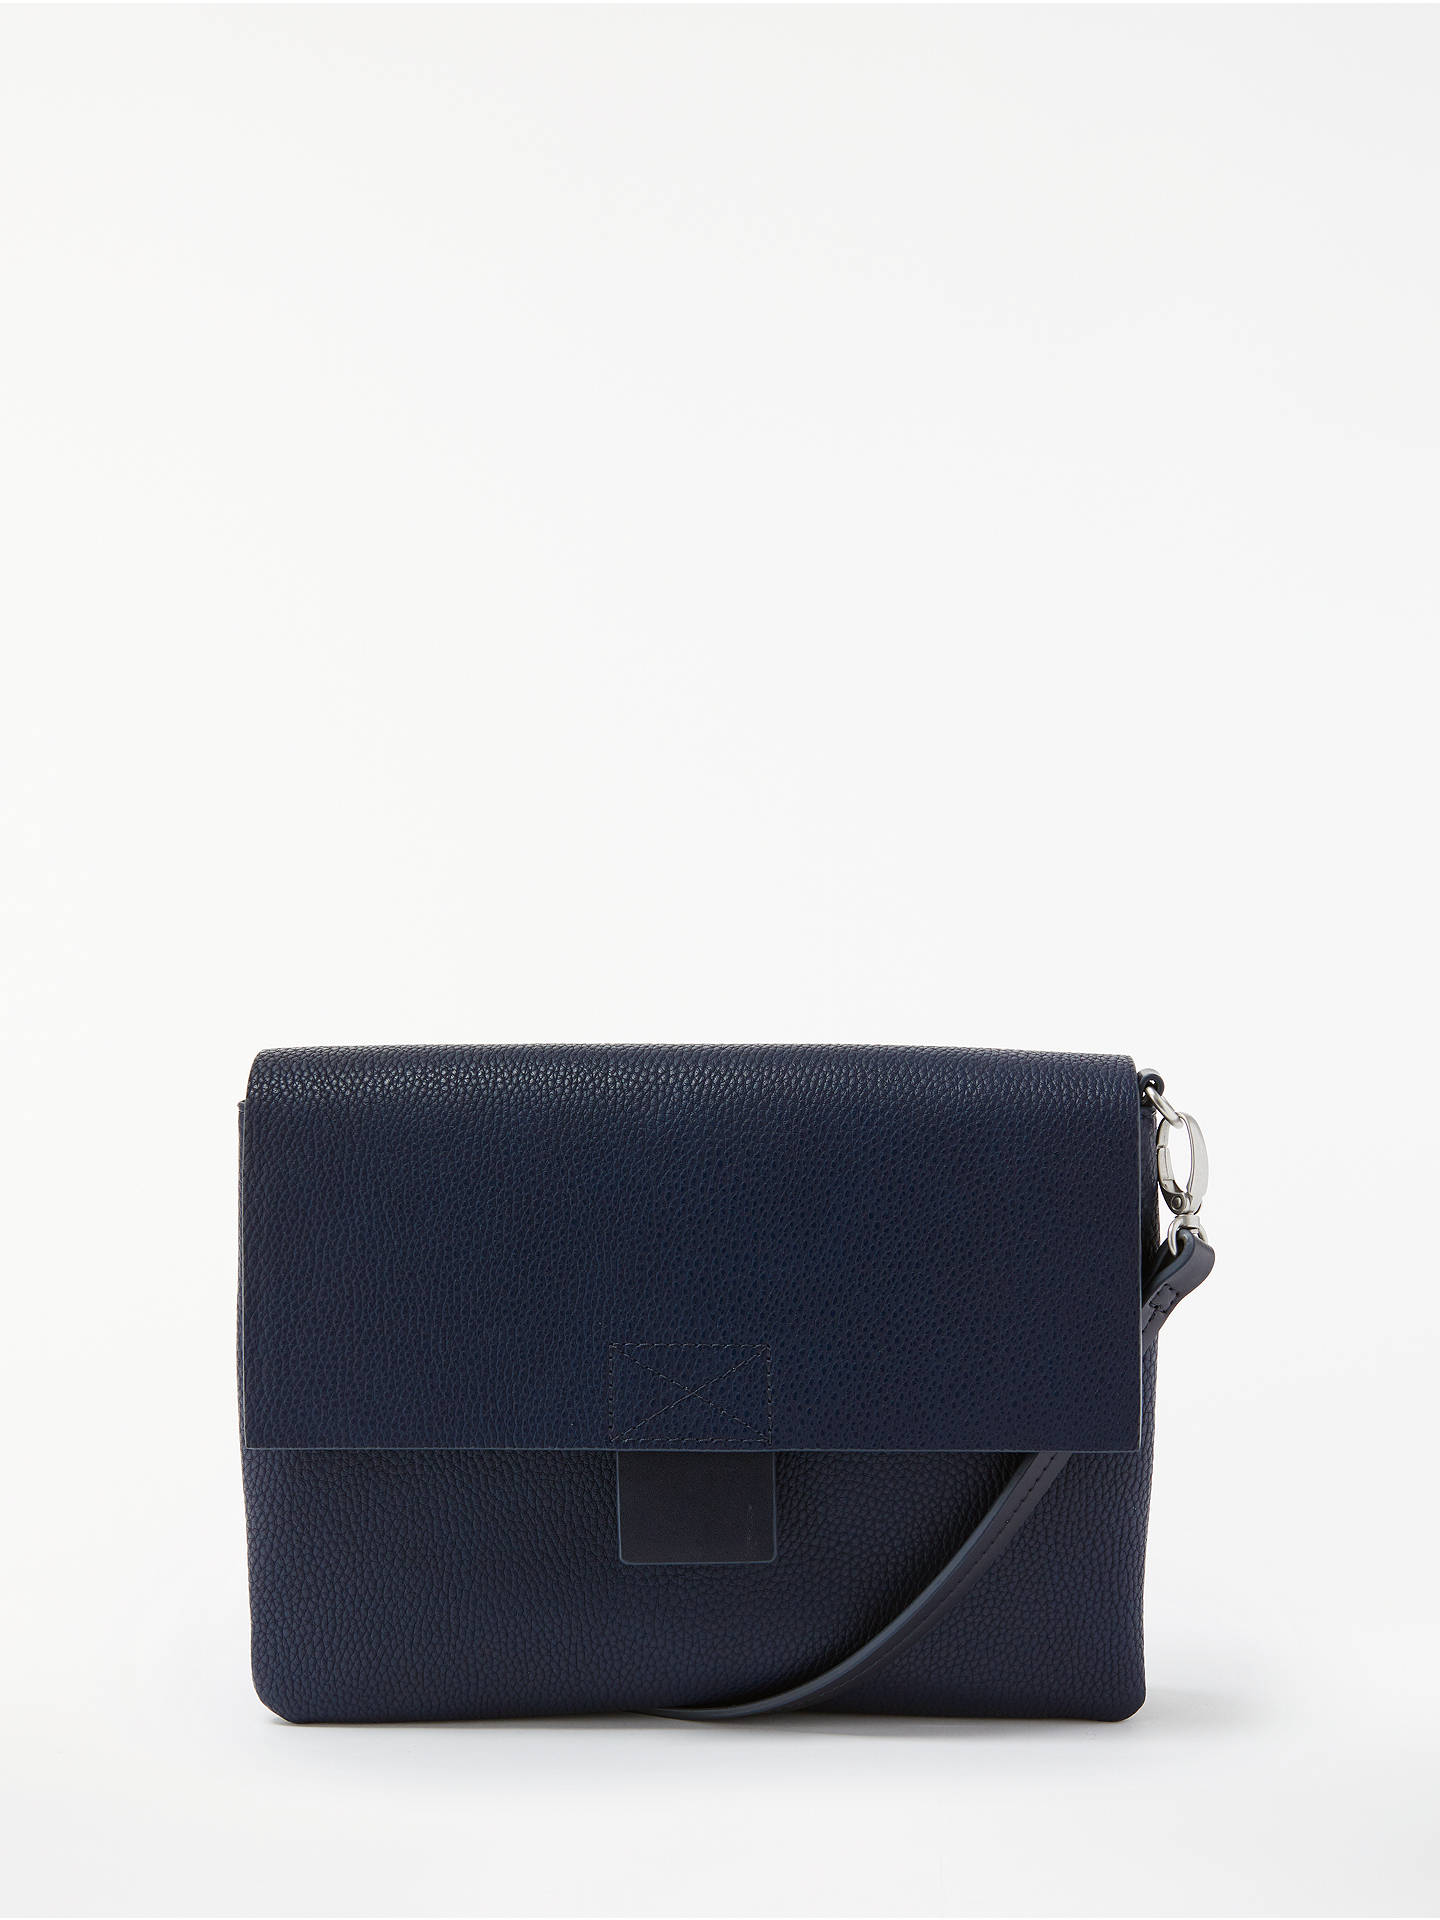 807d4881ce Buy Kin Erika Cross Body Bag, Navy Online at johnlewis.com ...